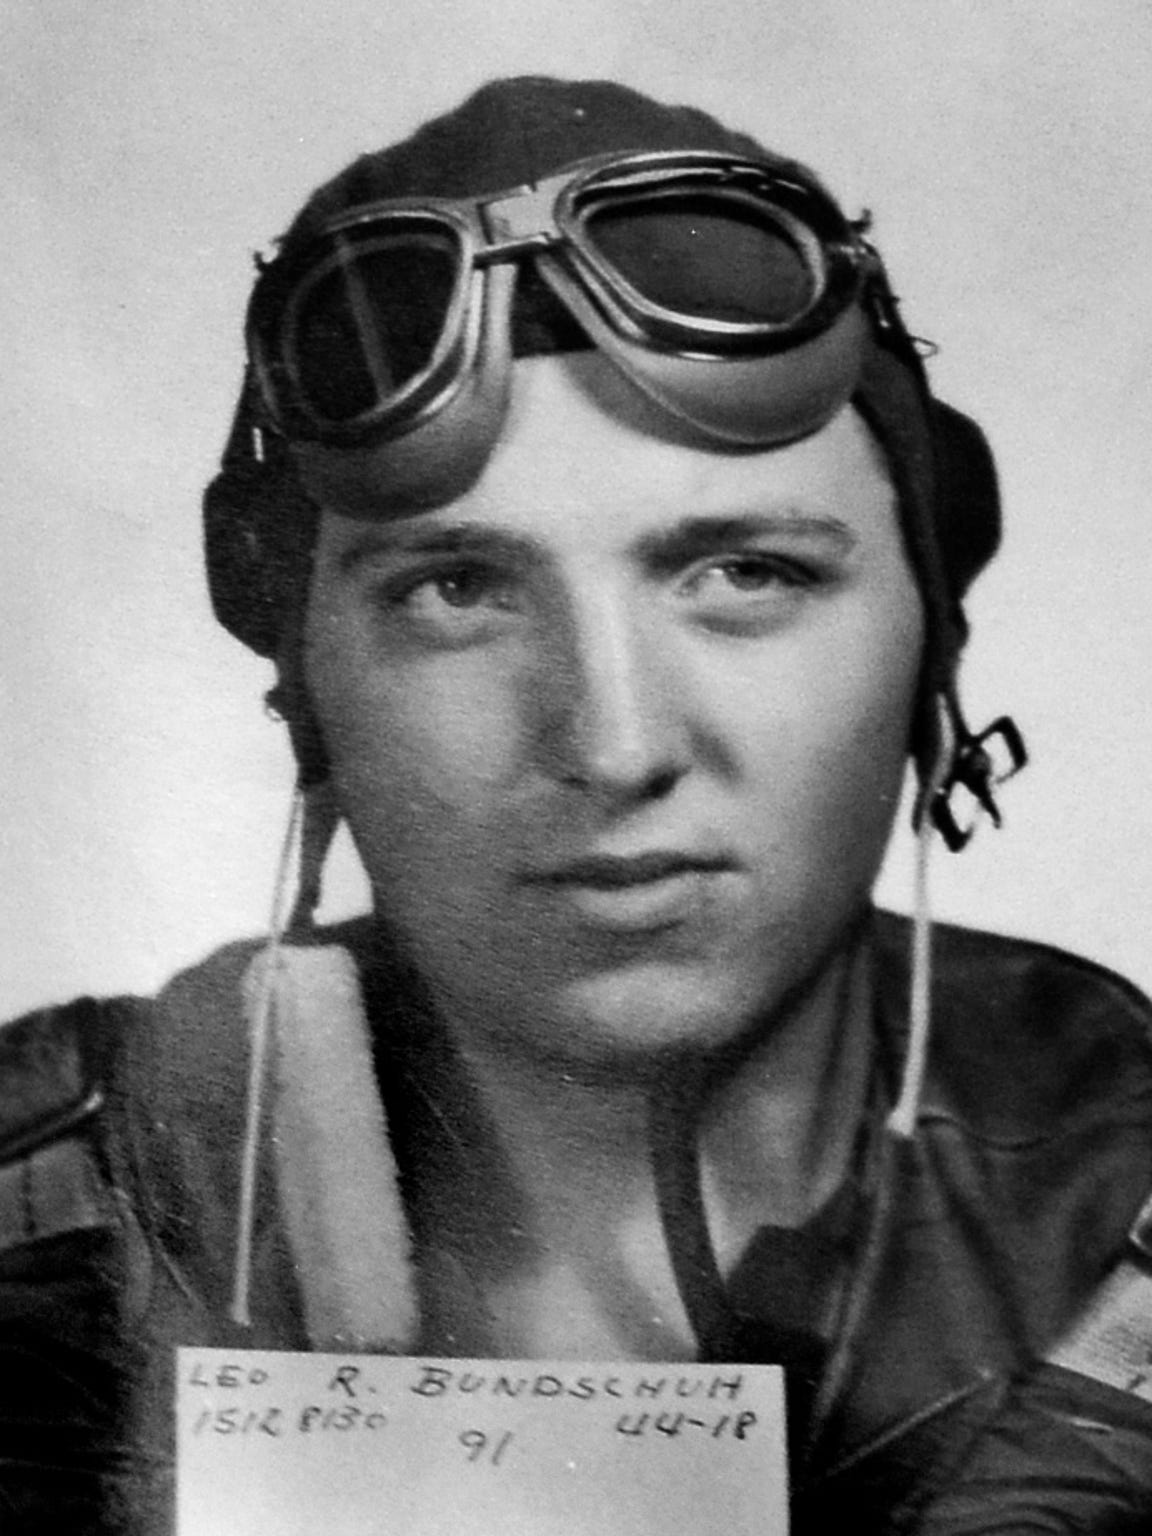 """During WWII, Leo Bundschuh served in 37 bombing missions in the Pacific over 14 months. """"Every time I was up there, there was always something happening."""""""